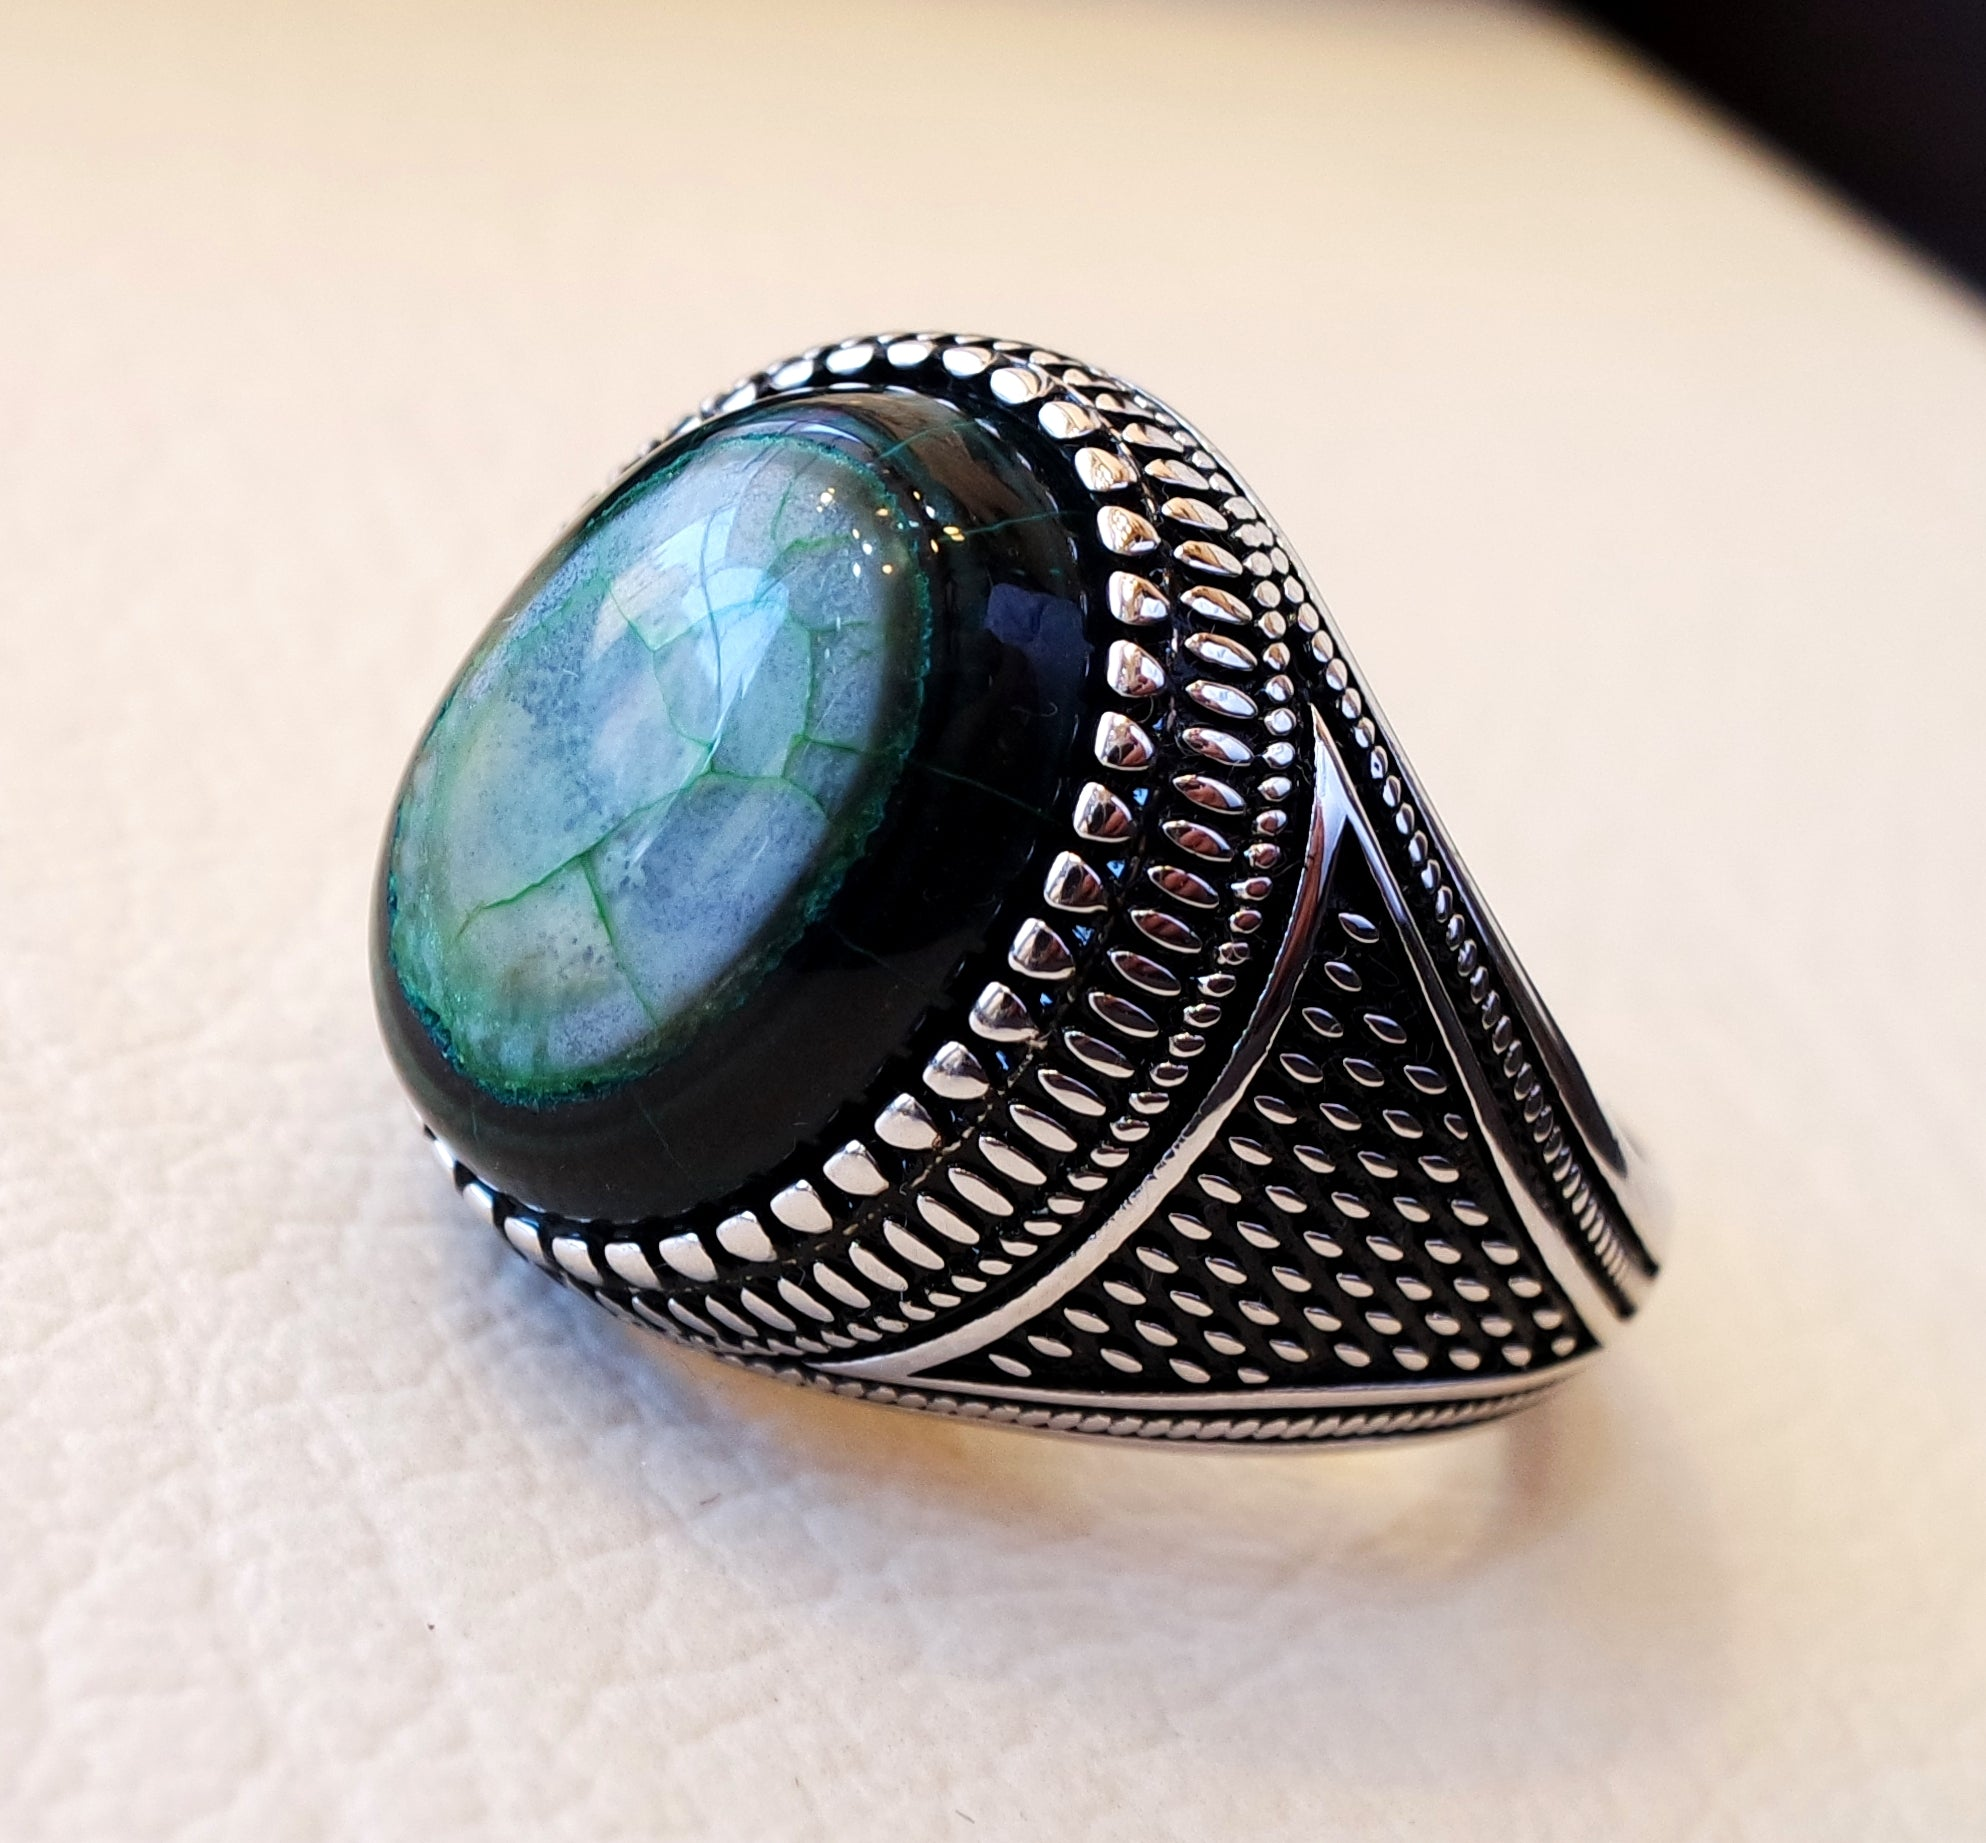 Akeek agate green natural aqeeq stone semi precious men ring sterling silver 925 all sizes antique ottoman middle east style jewelry